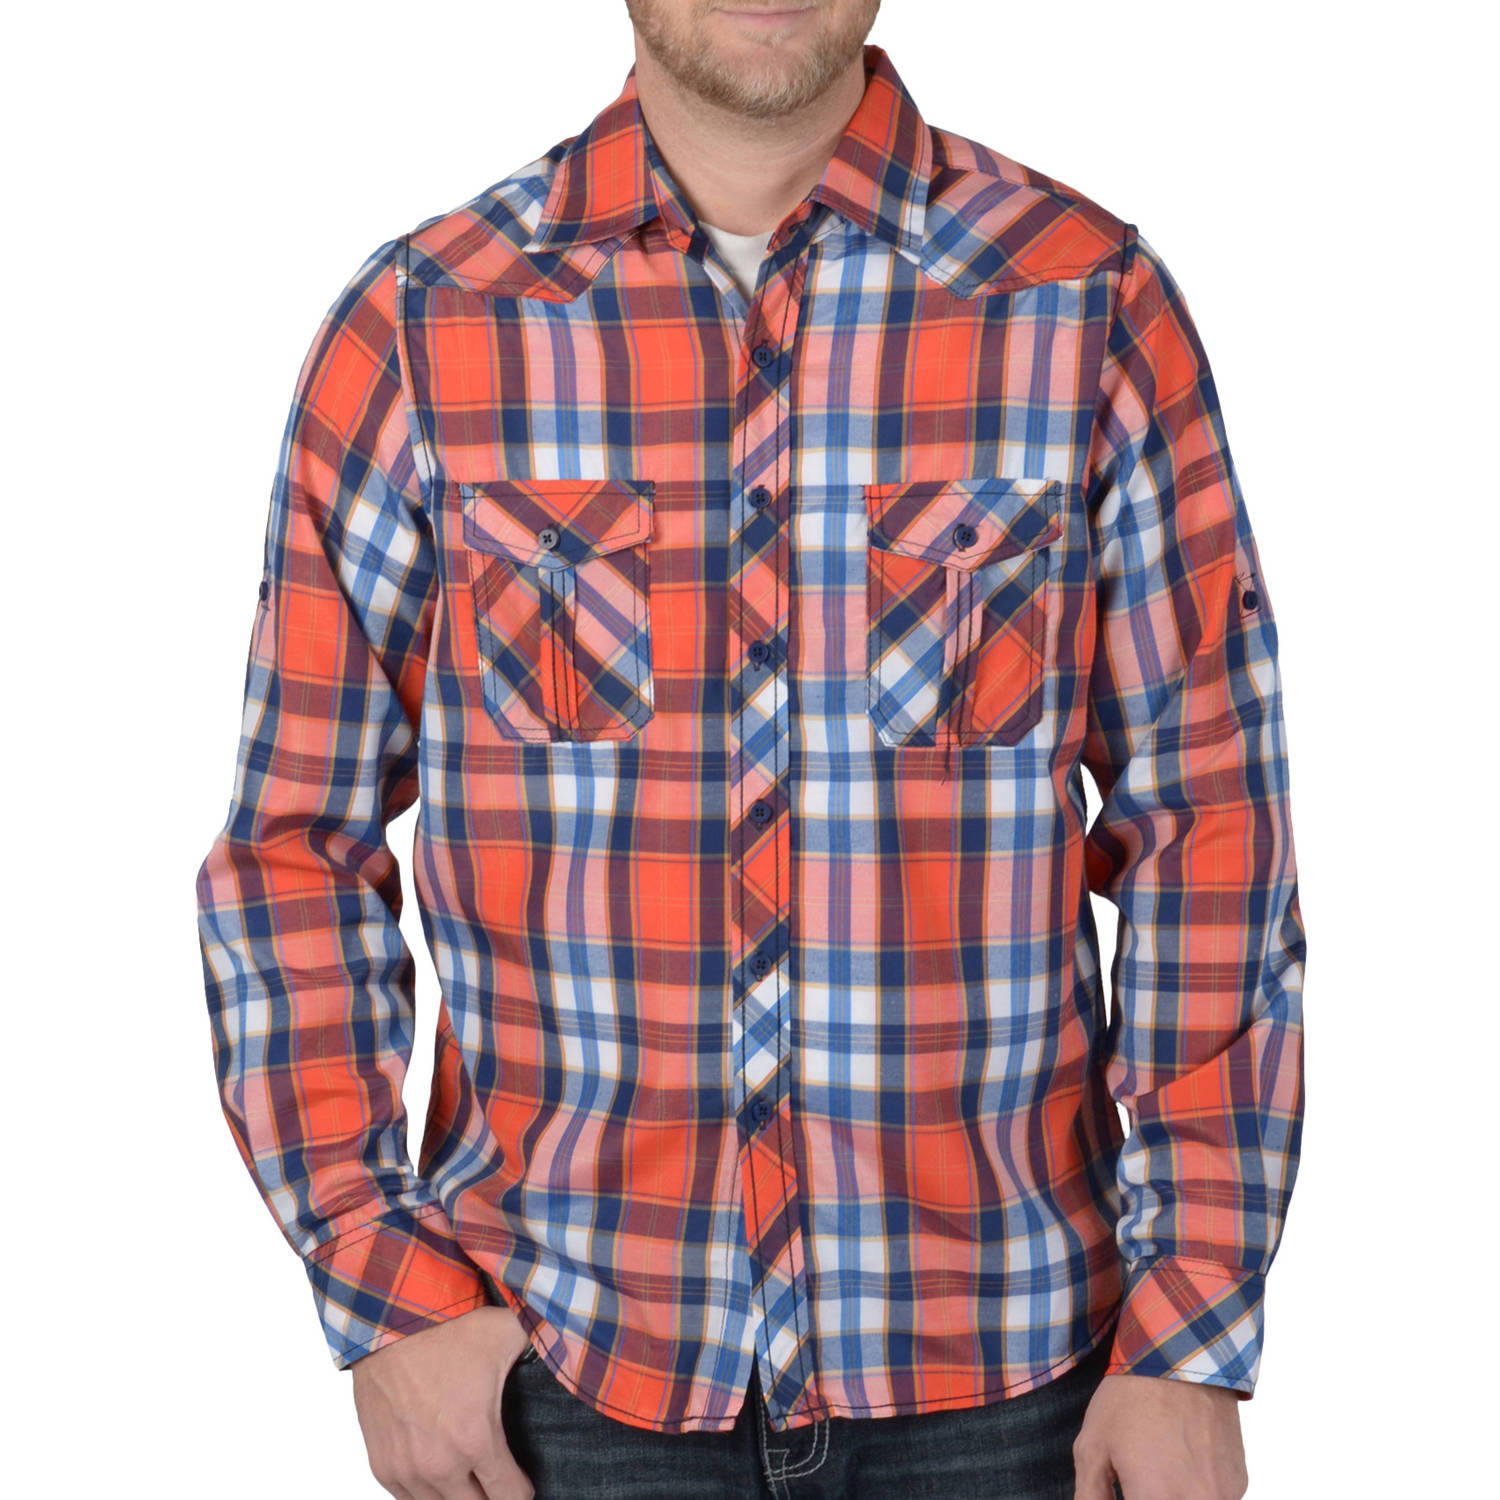 Daxx Mens Button-up Rolled Sleeve Plaid Shirt